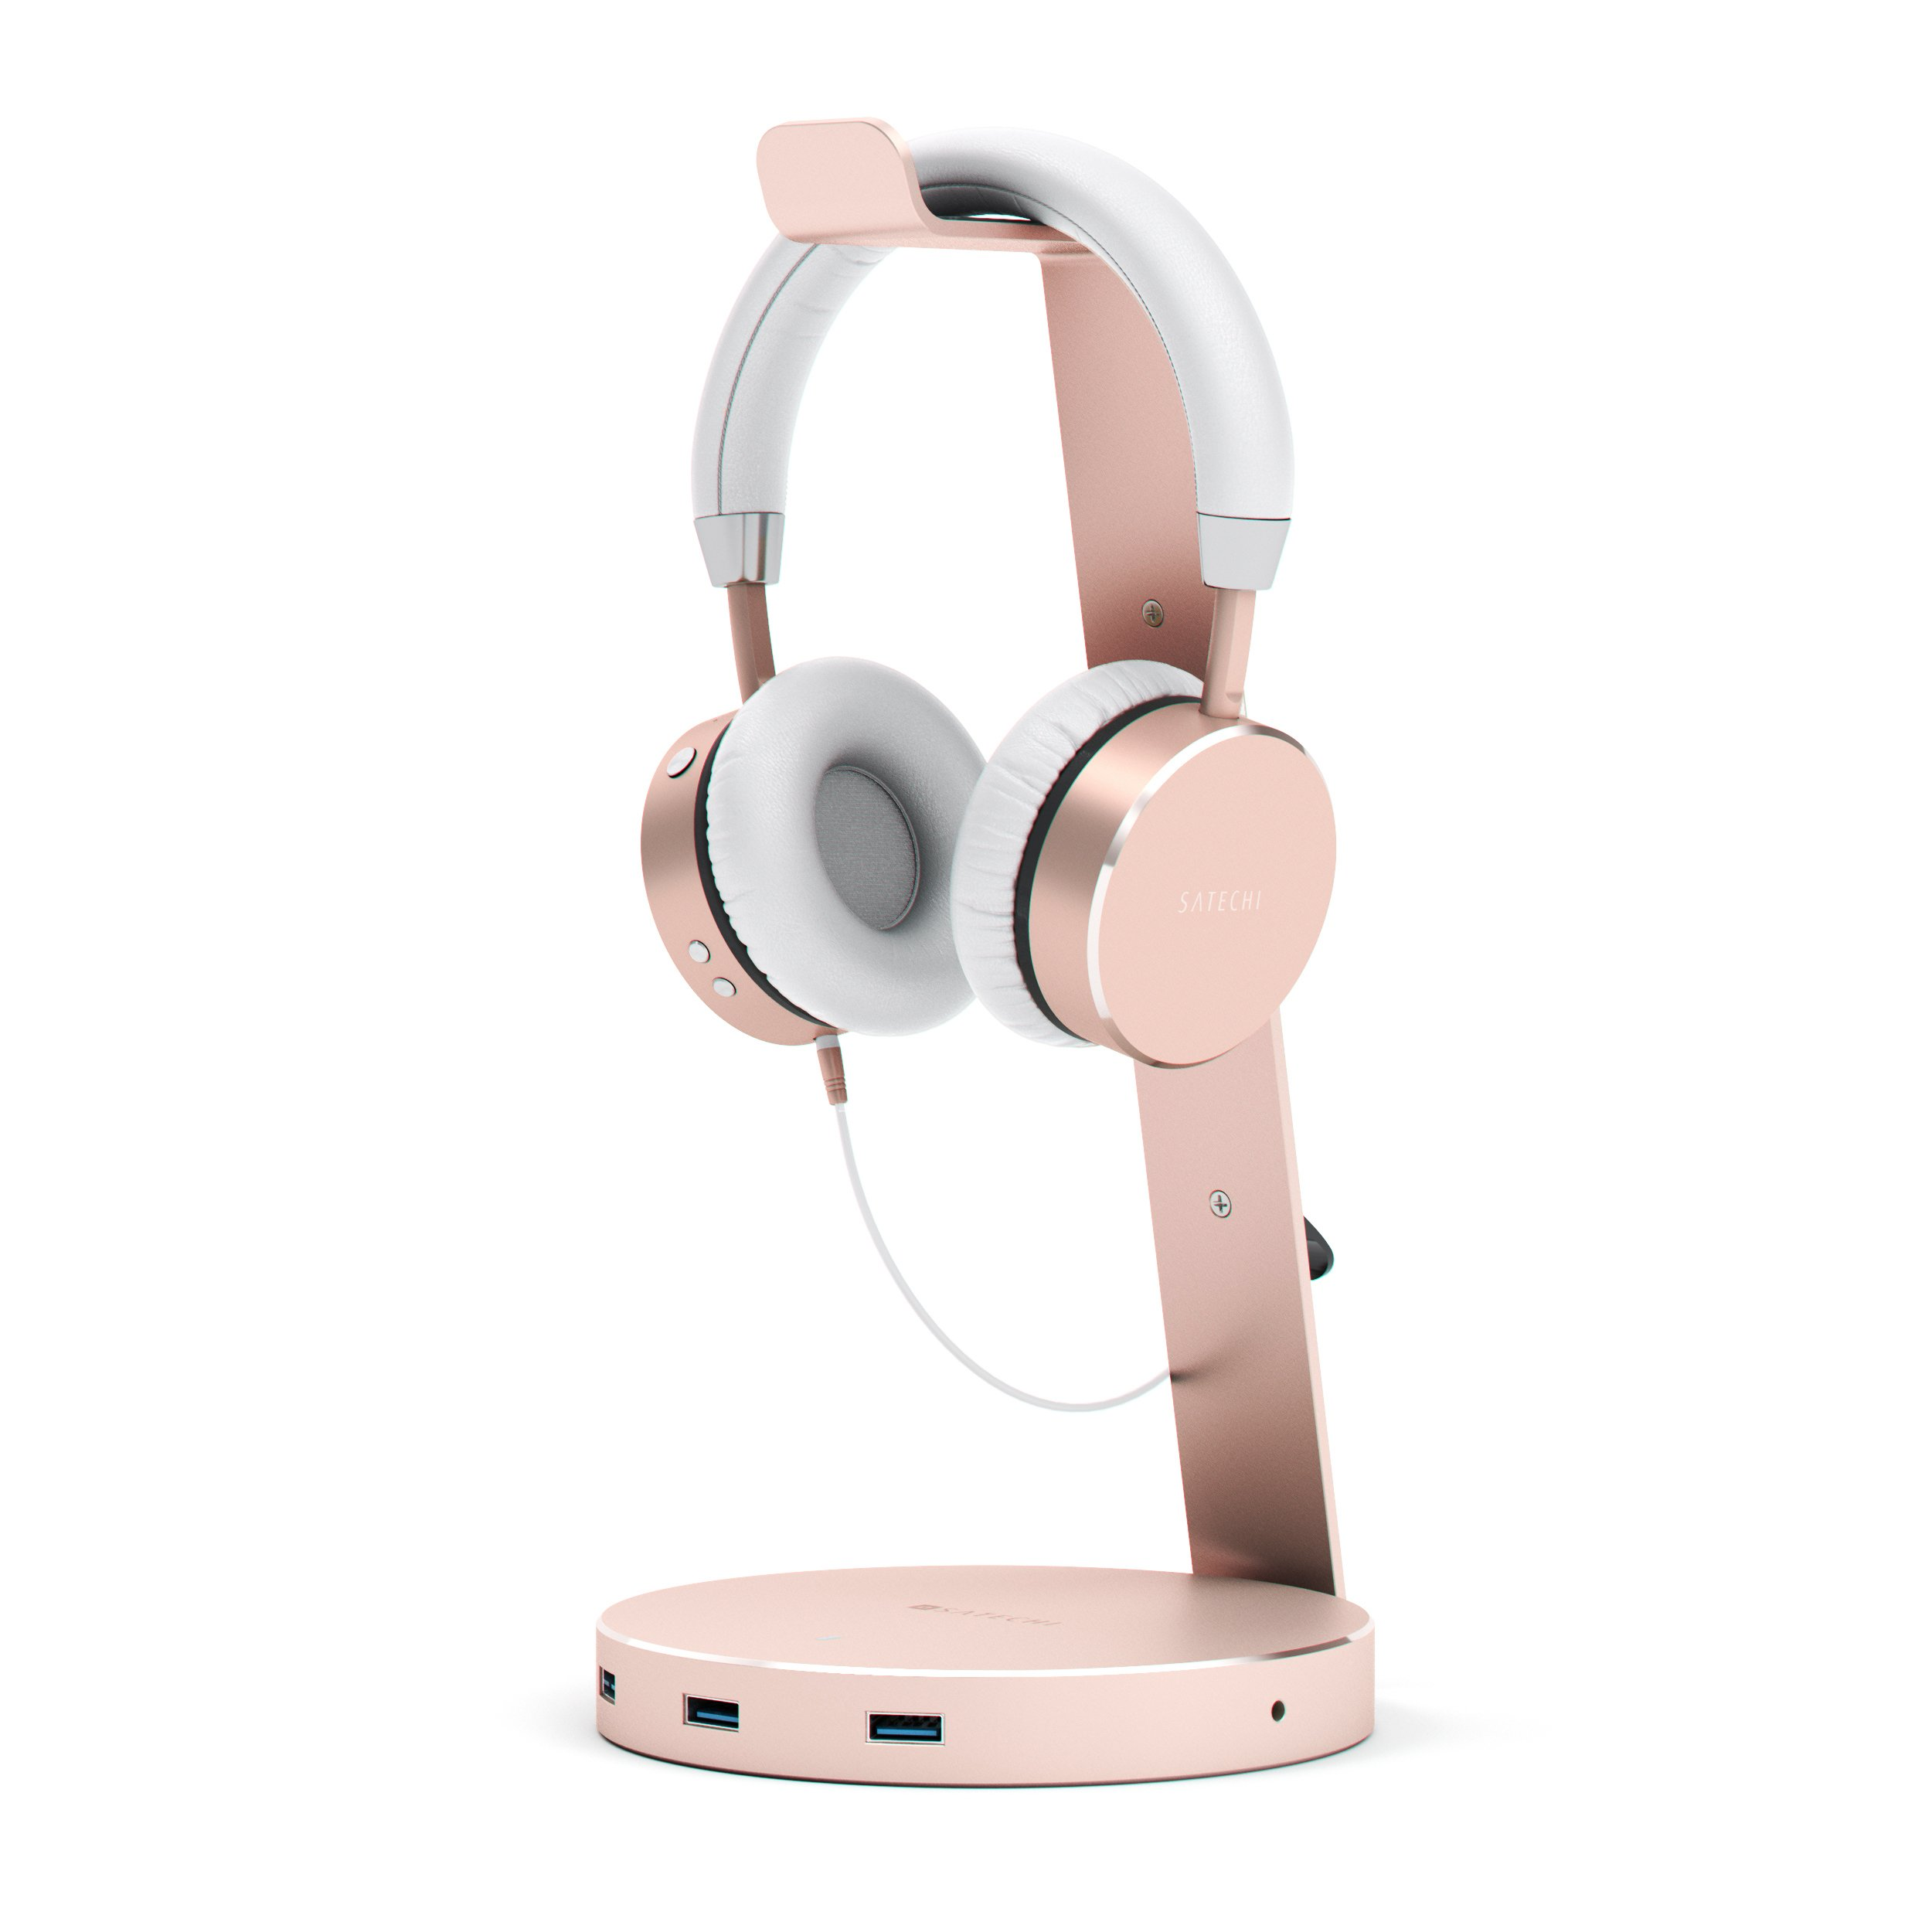 Satechi Aluminum USB Headphone Stand Holder with Three USB 3.0 Ports and 3.5mm AUX port - Suitable For All Headphone Sizes (Rose Gold)